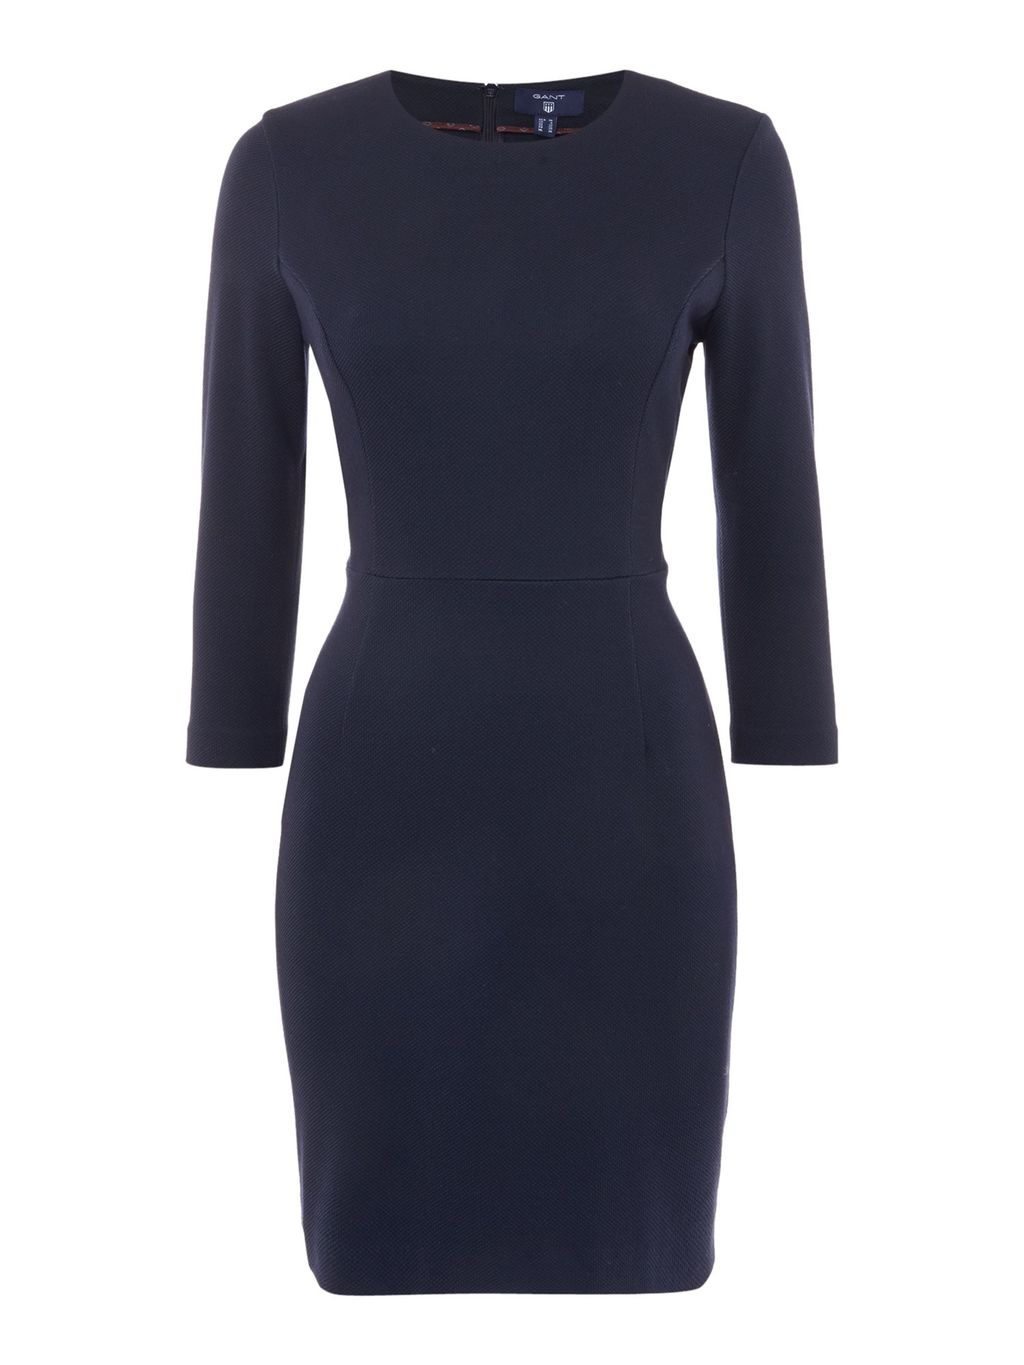 Jersey Pique Dress, Blue - style: shift; length: mini; fit: tailored/fitted; pattern: plain; hip detail: draws attention to hips; predominant colour: navy; occasions: evening; fibres: polyester/polyamide - 100%; neckline: crew; sleeve length: 3/4 length; sleeve style: standard; texture group: crepes; pattern type: fabric; season: s/s 2016; wardrobe: event